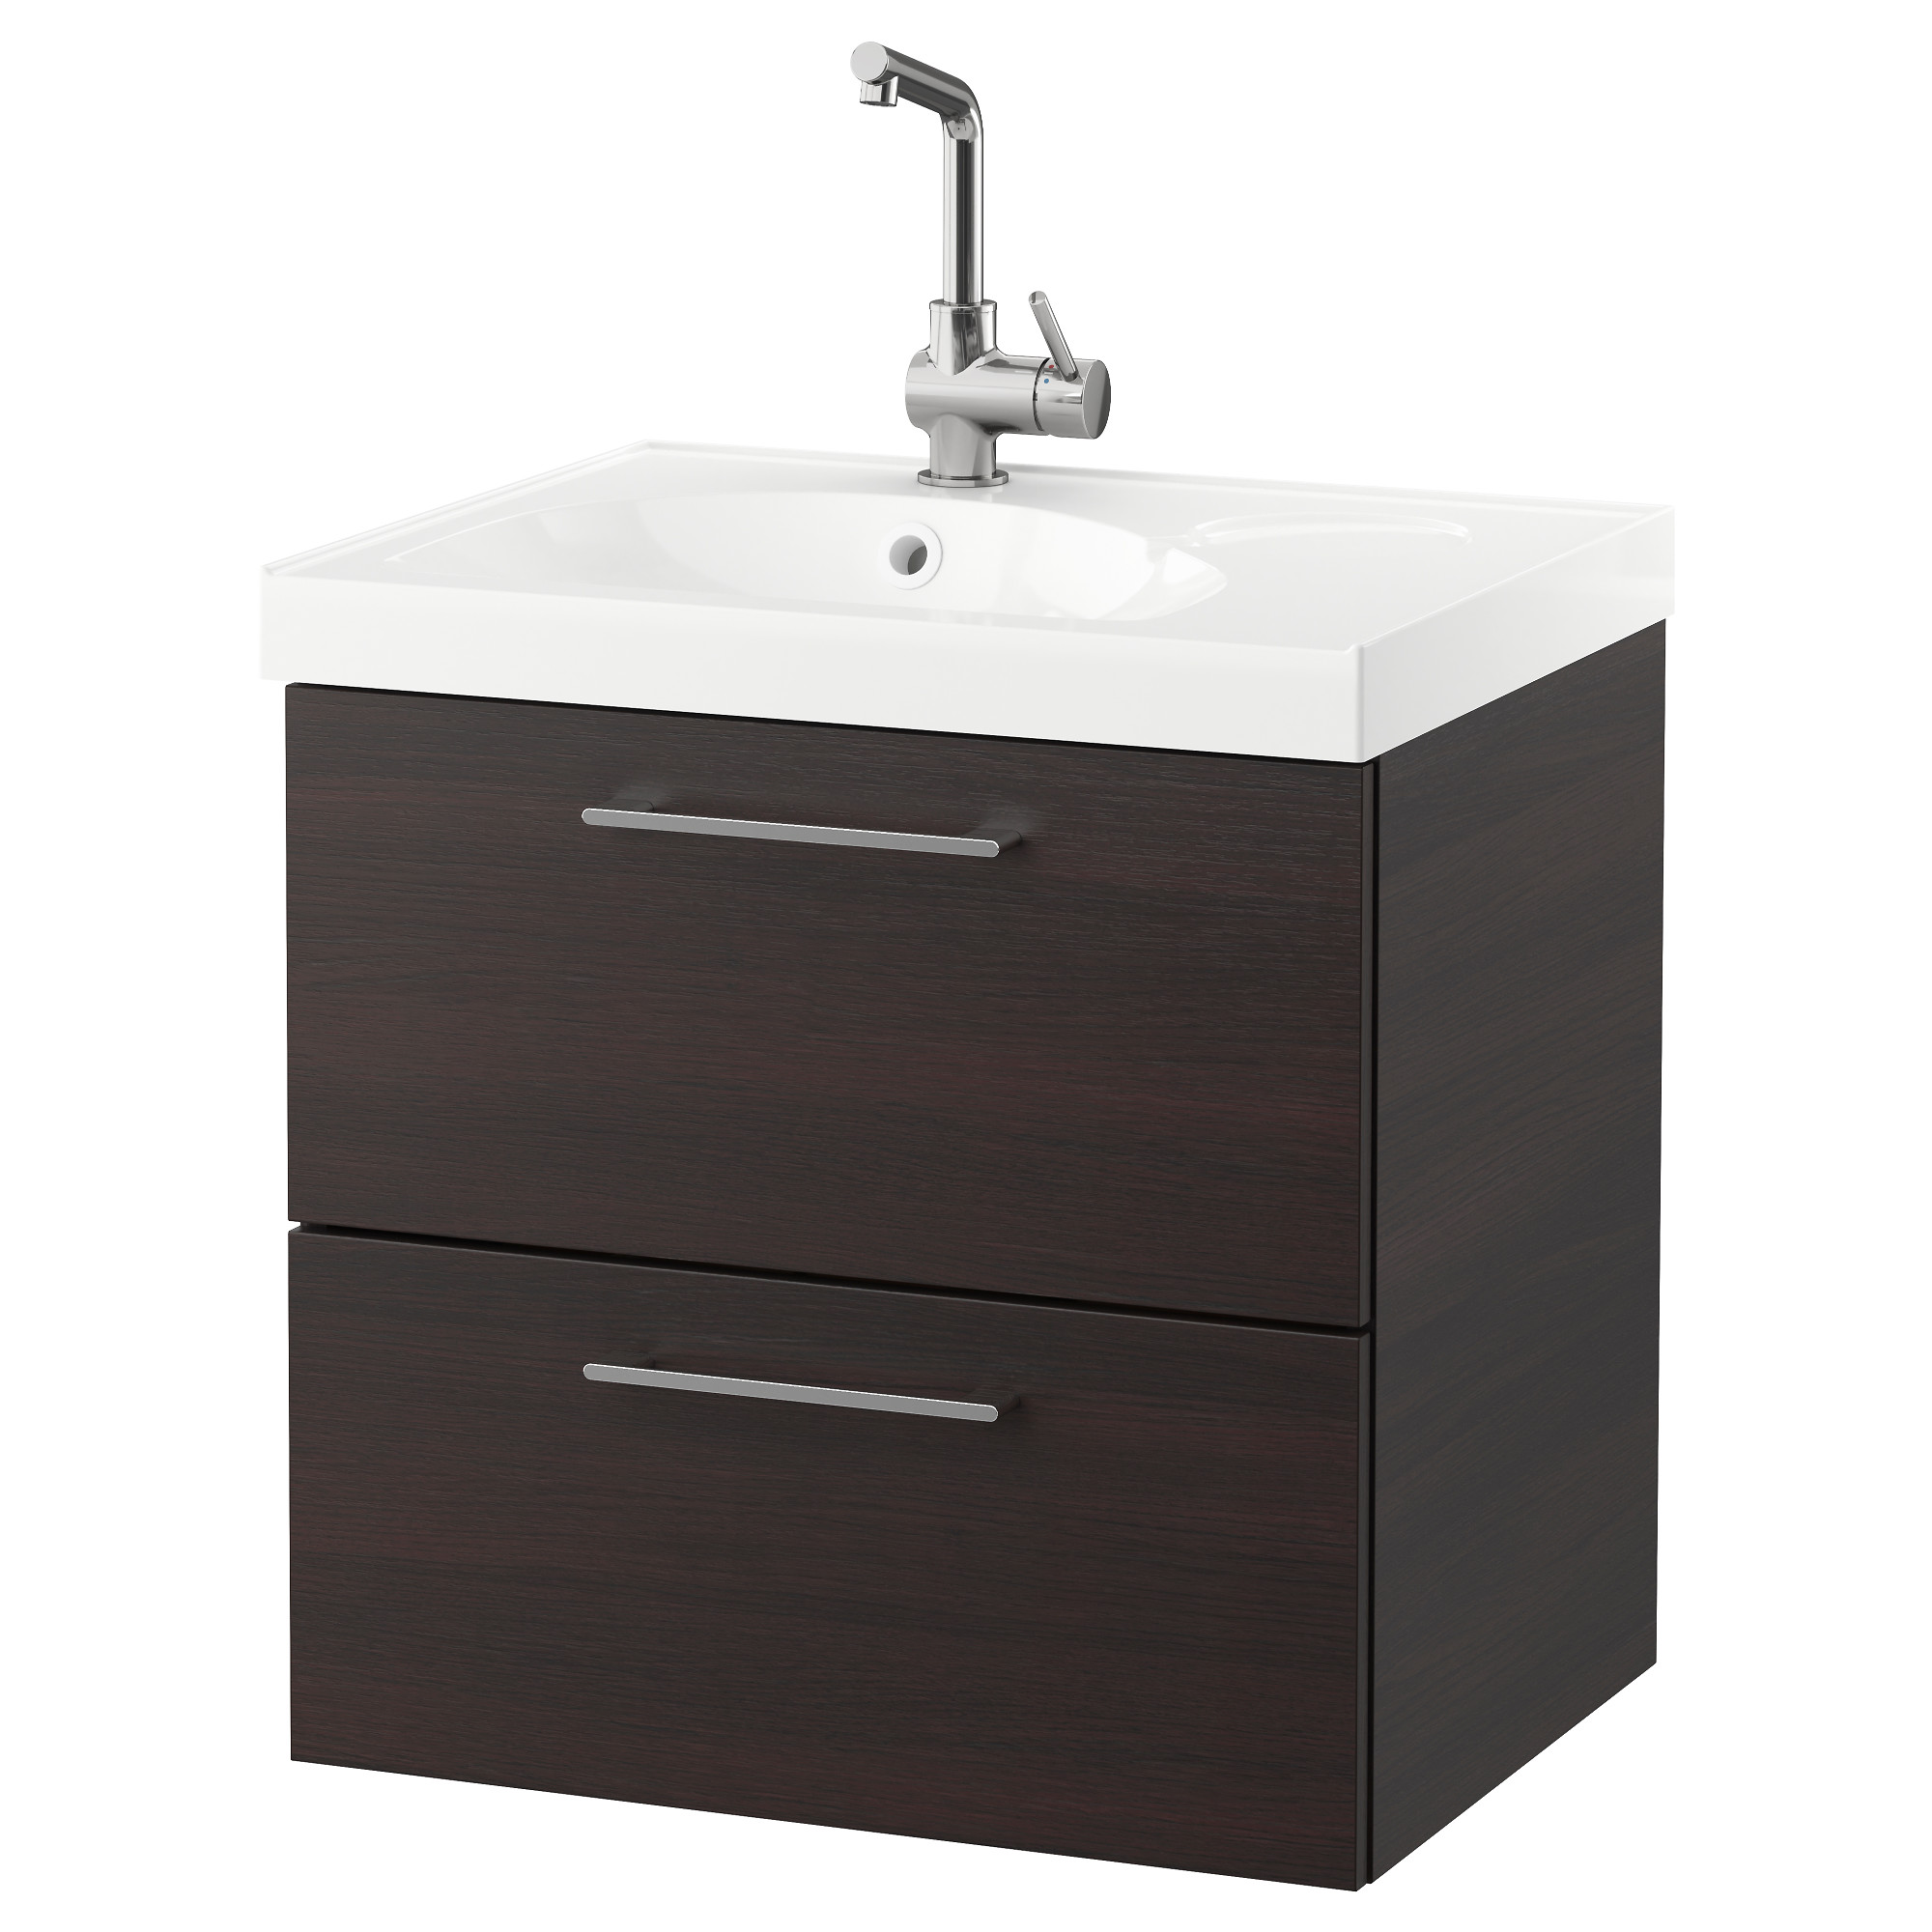 Bathroom vanity basin - Godmorgon Edeboviken Sink Cabinet With 2 Drawers Black Brown Width 24 3